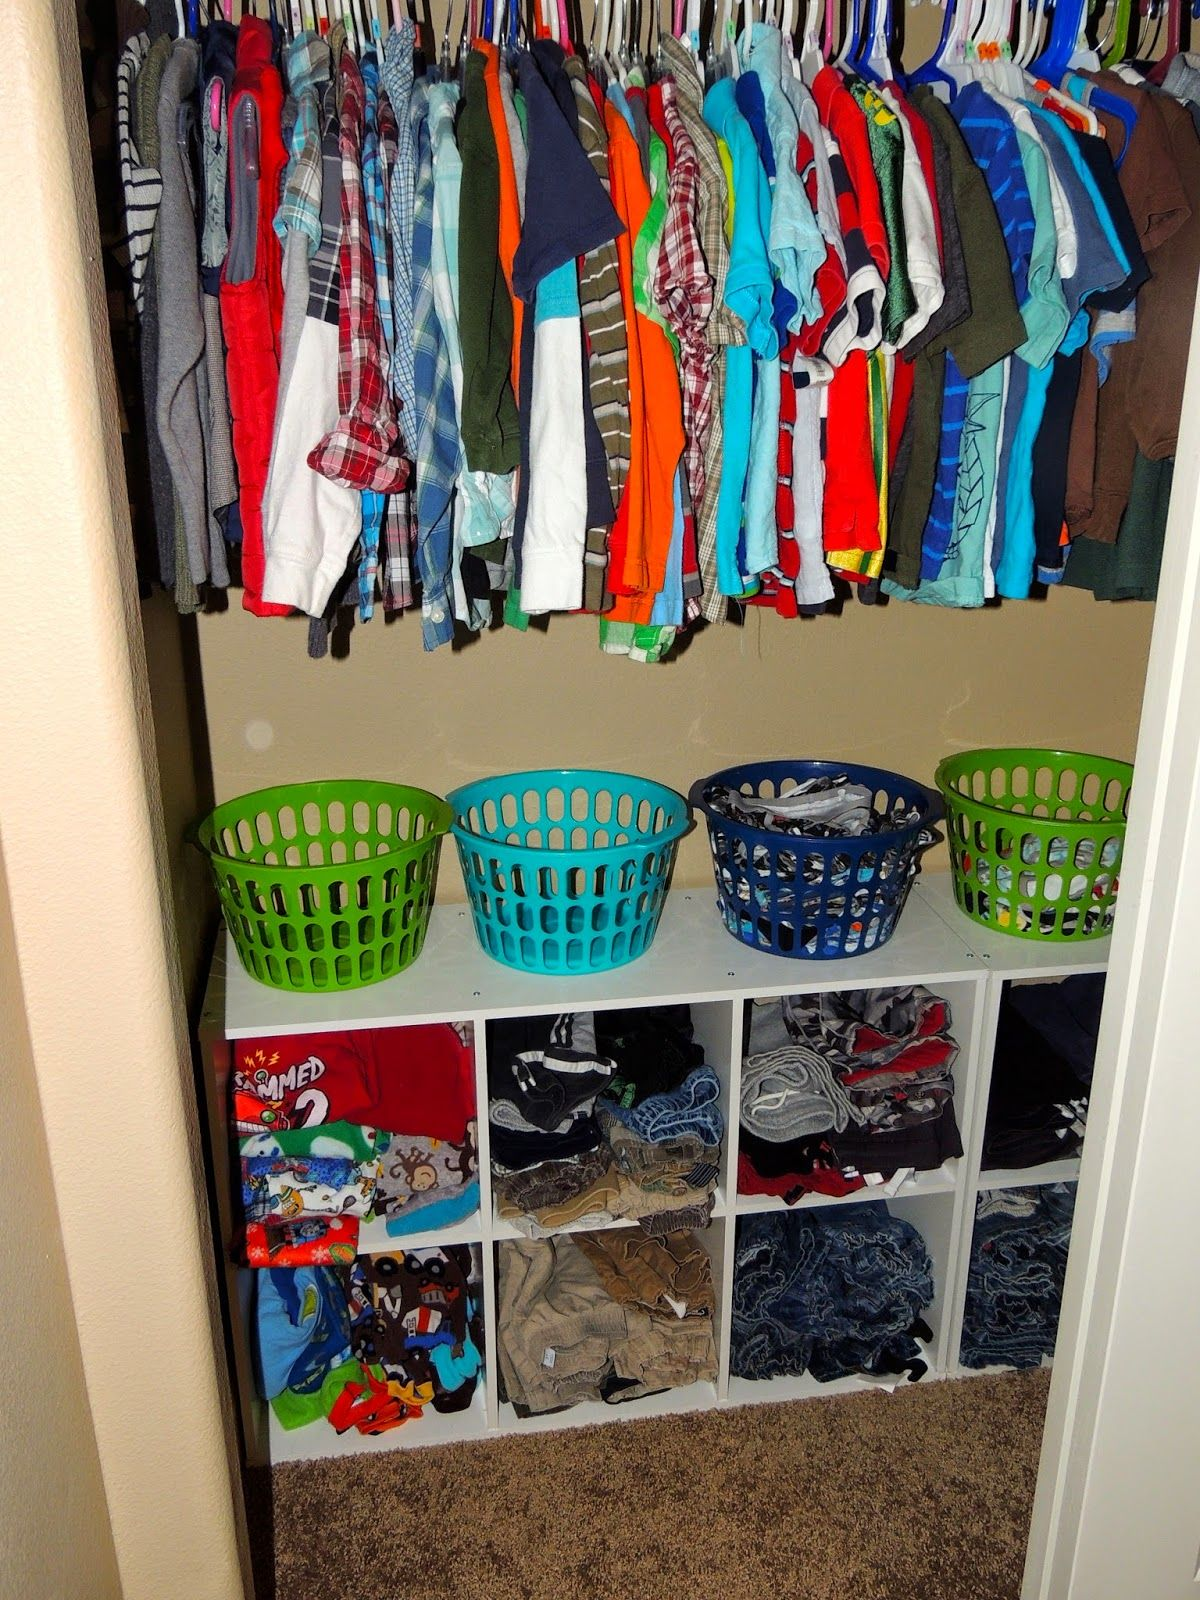 Pin By Maria Lizy Lopez Tenorio On Organizing Ideas Kids